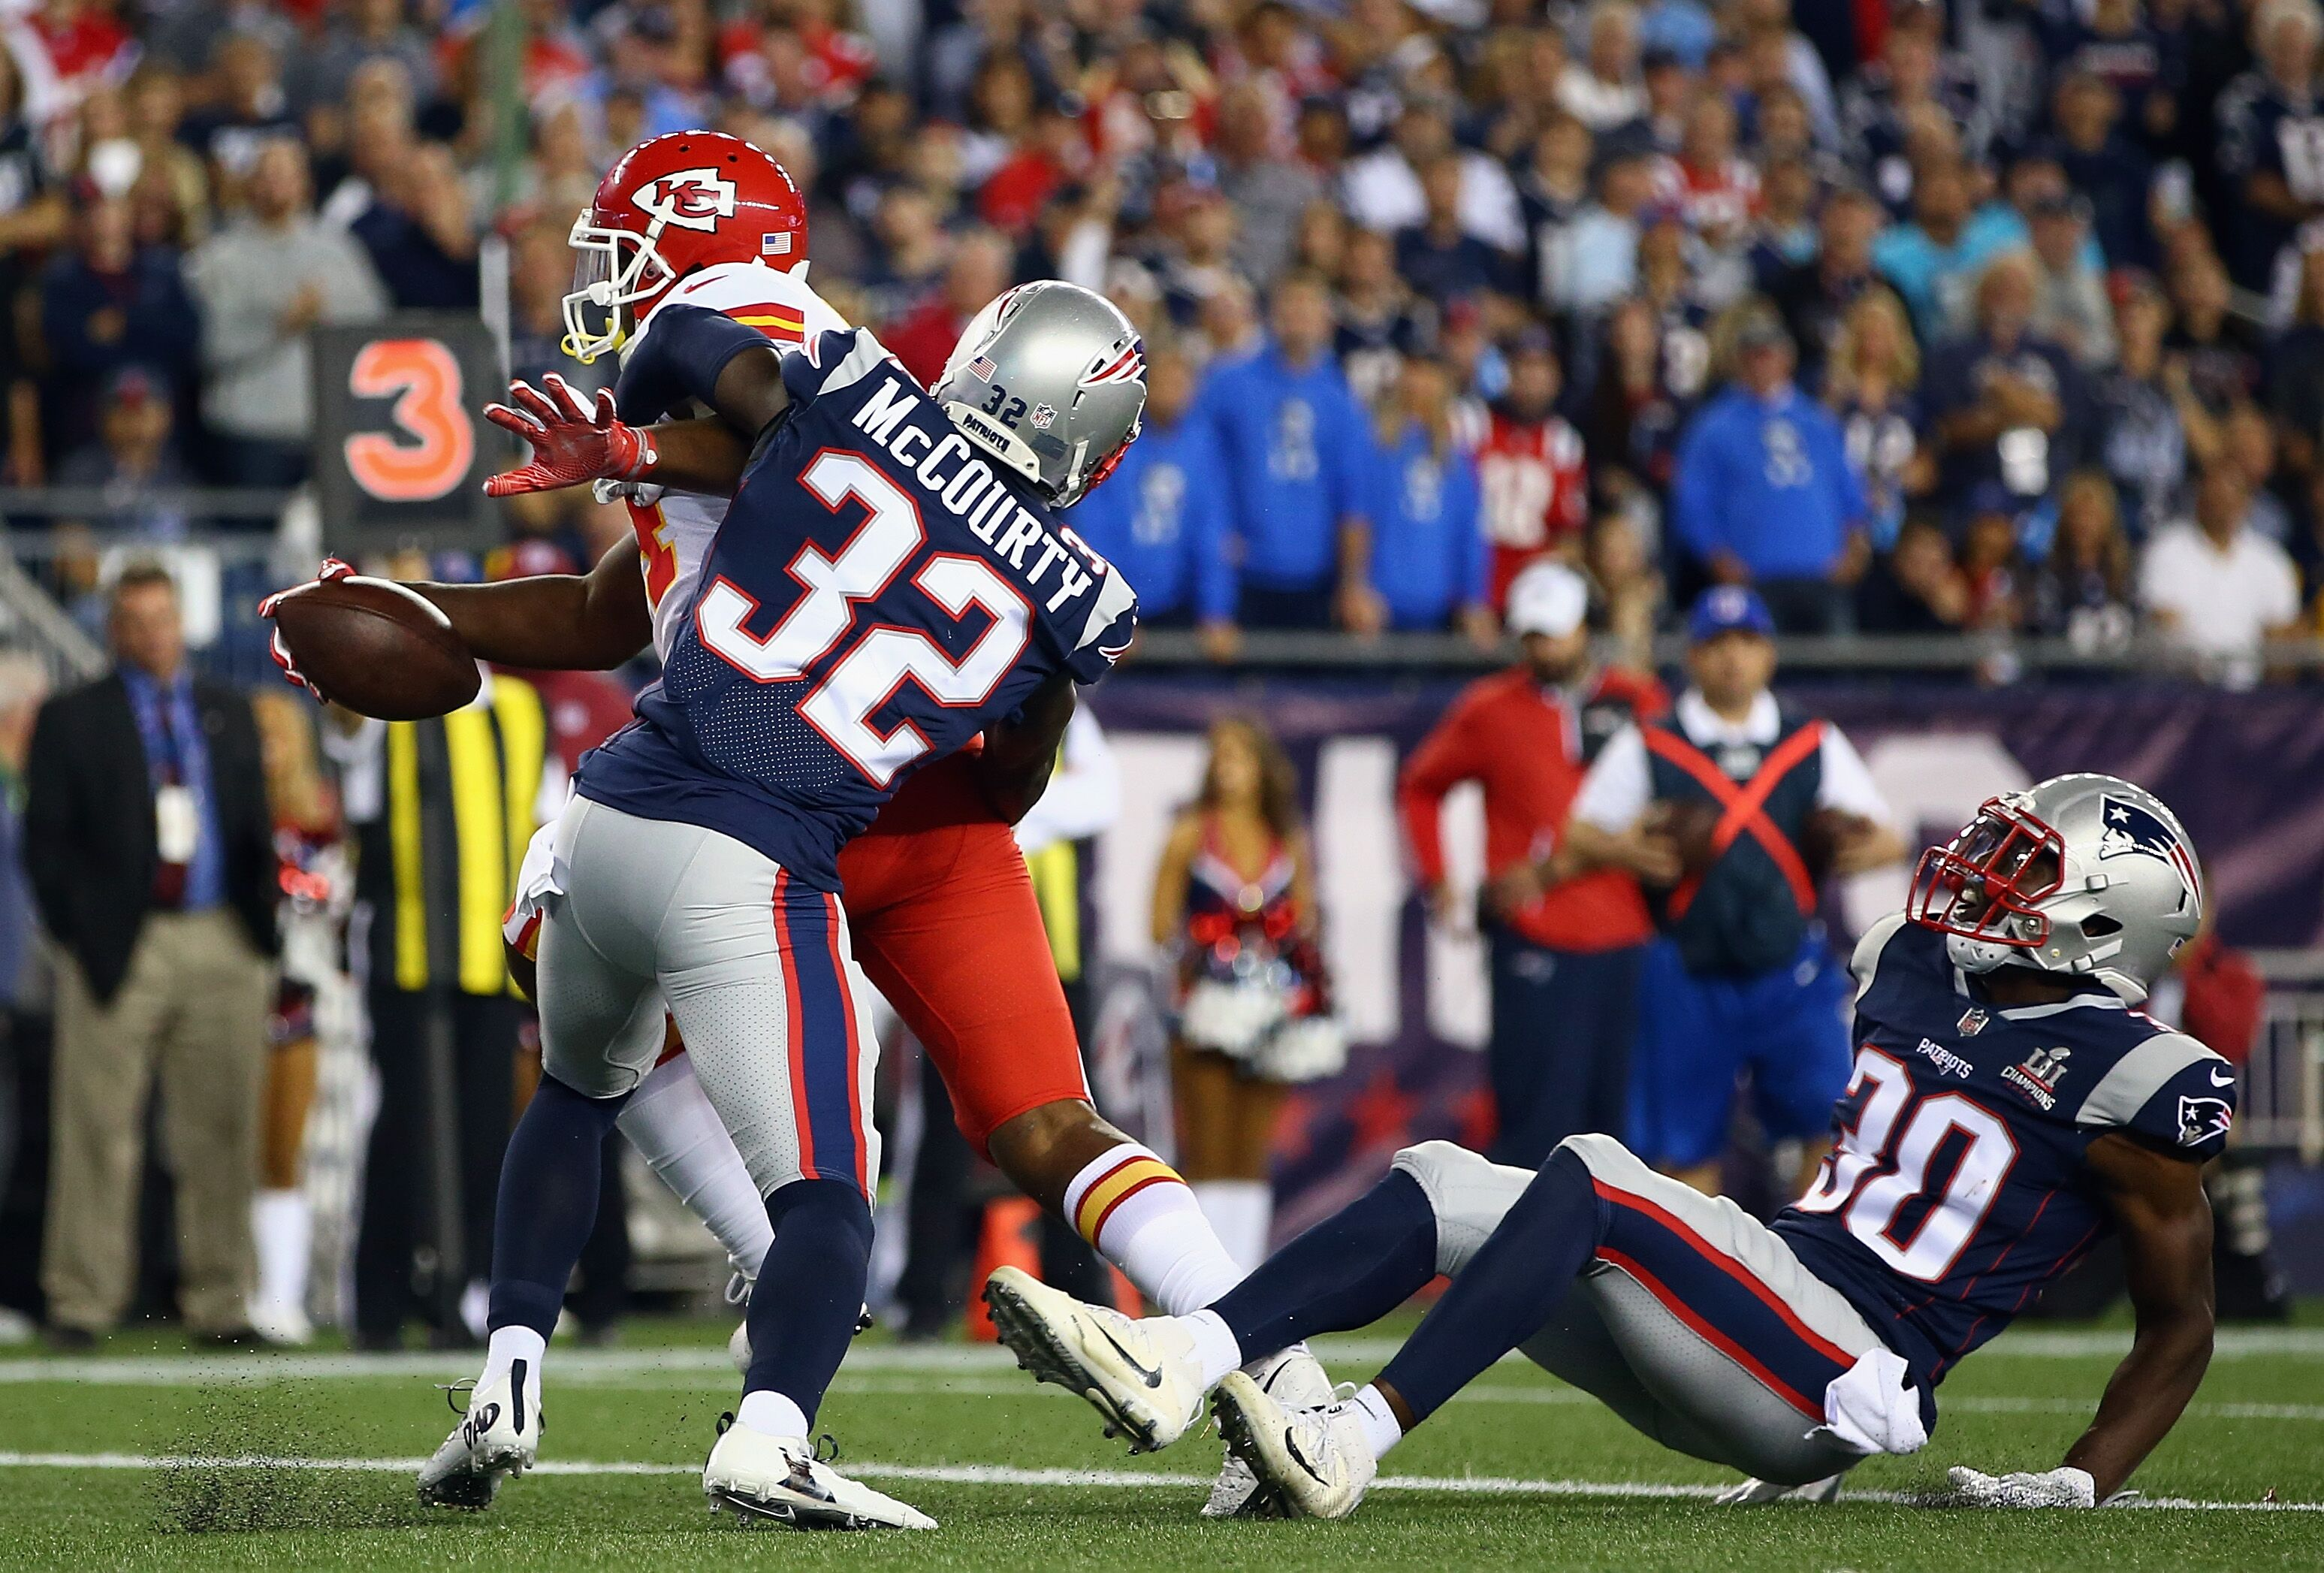 New England Patriots Secondary success begins with Devin McCourty